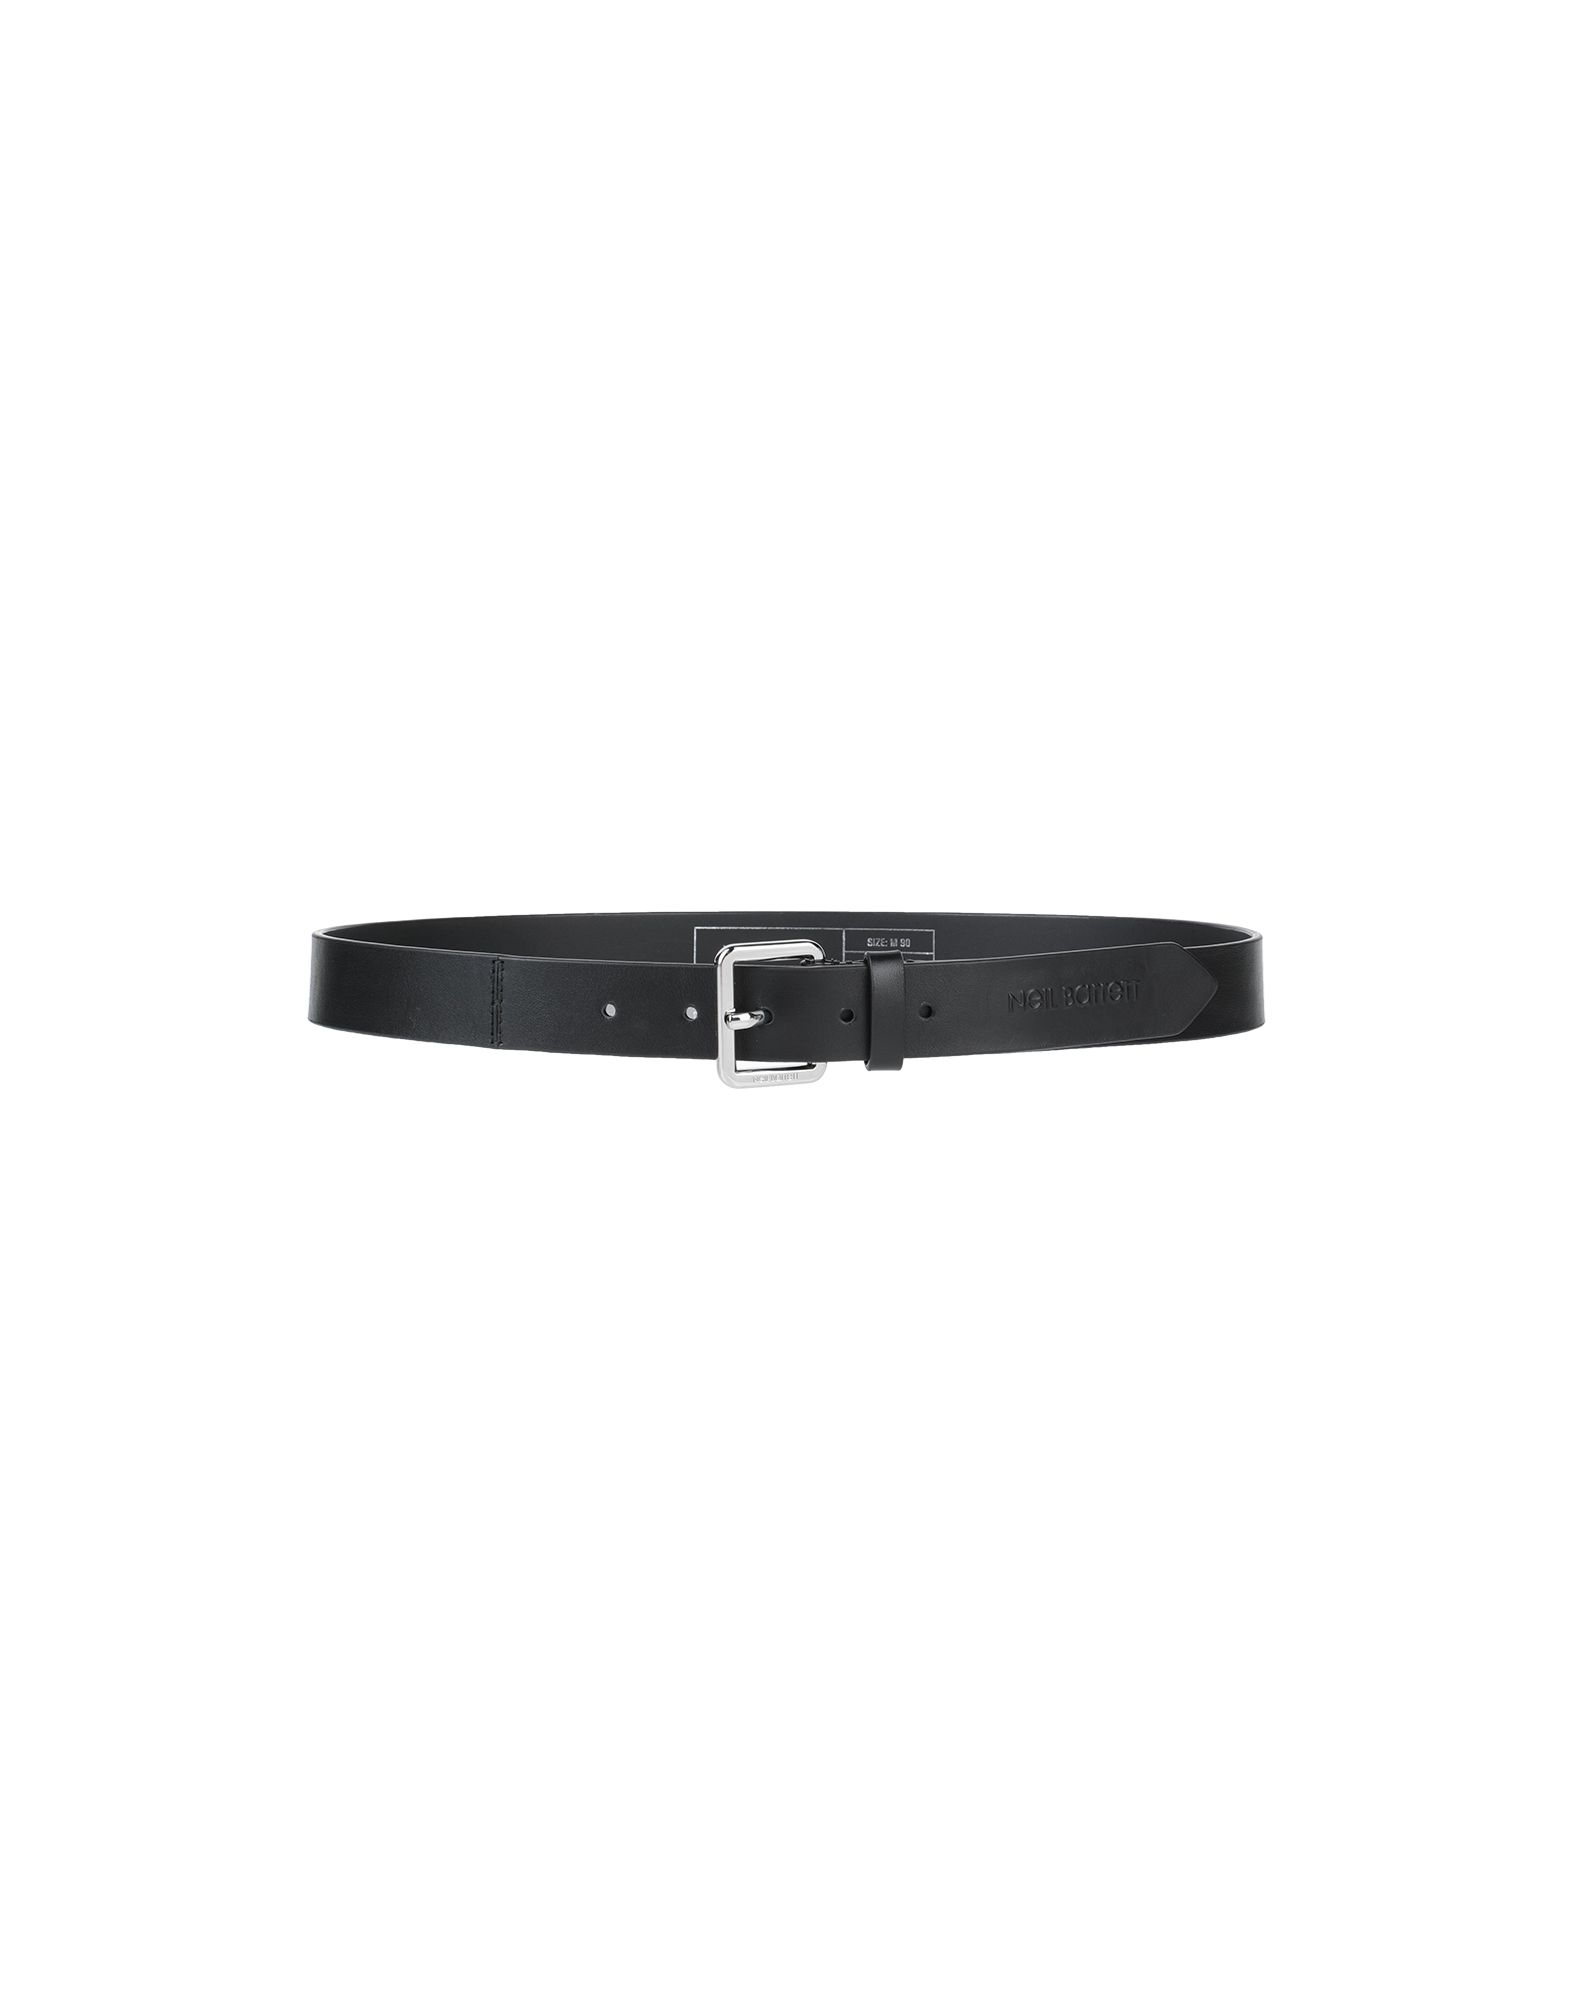 NEIL BARRETT Belts. leather, no appliqués, solid color, buckle fastening, leather lining, standard, contains non-textile parts of animal origin. Soft Leather